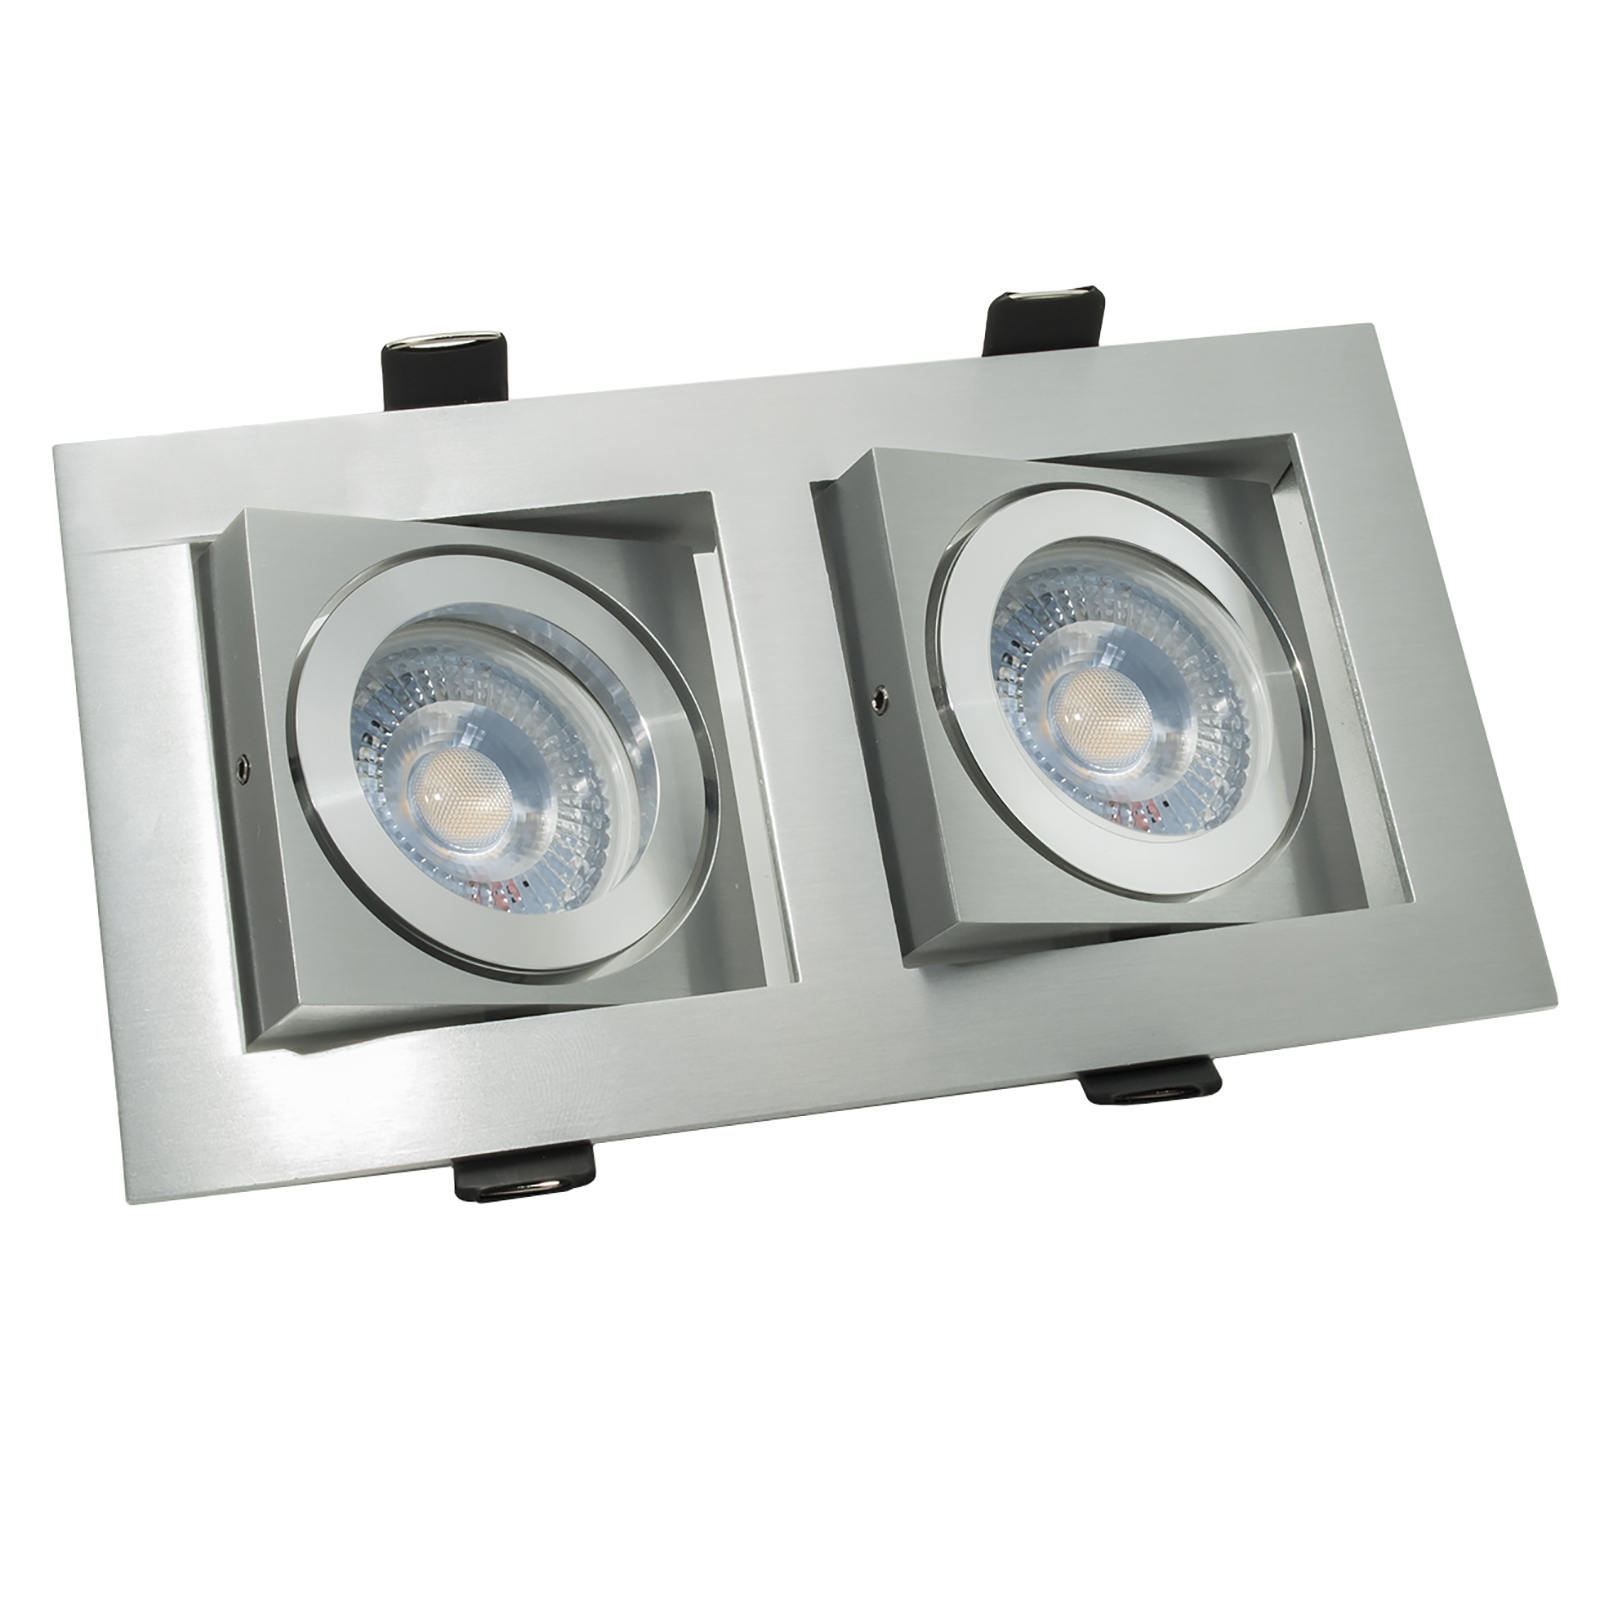 Spotlight rectangular LED 10W double lamp recessed spot light 38 degree GU10 220V